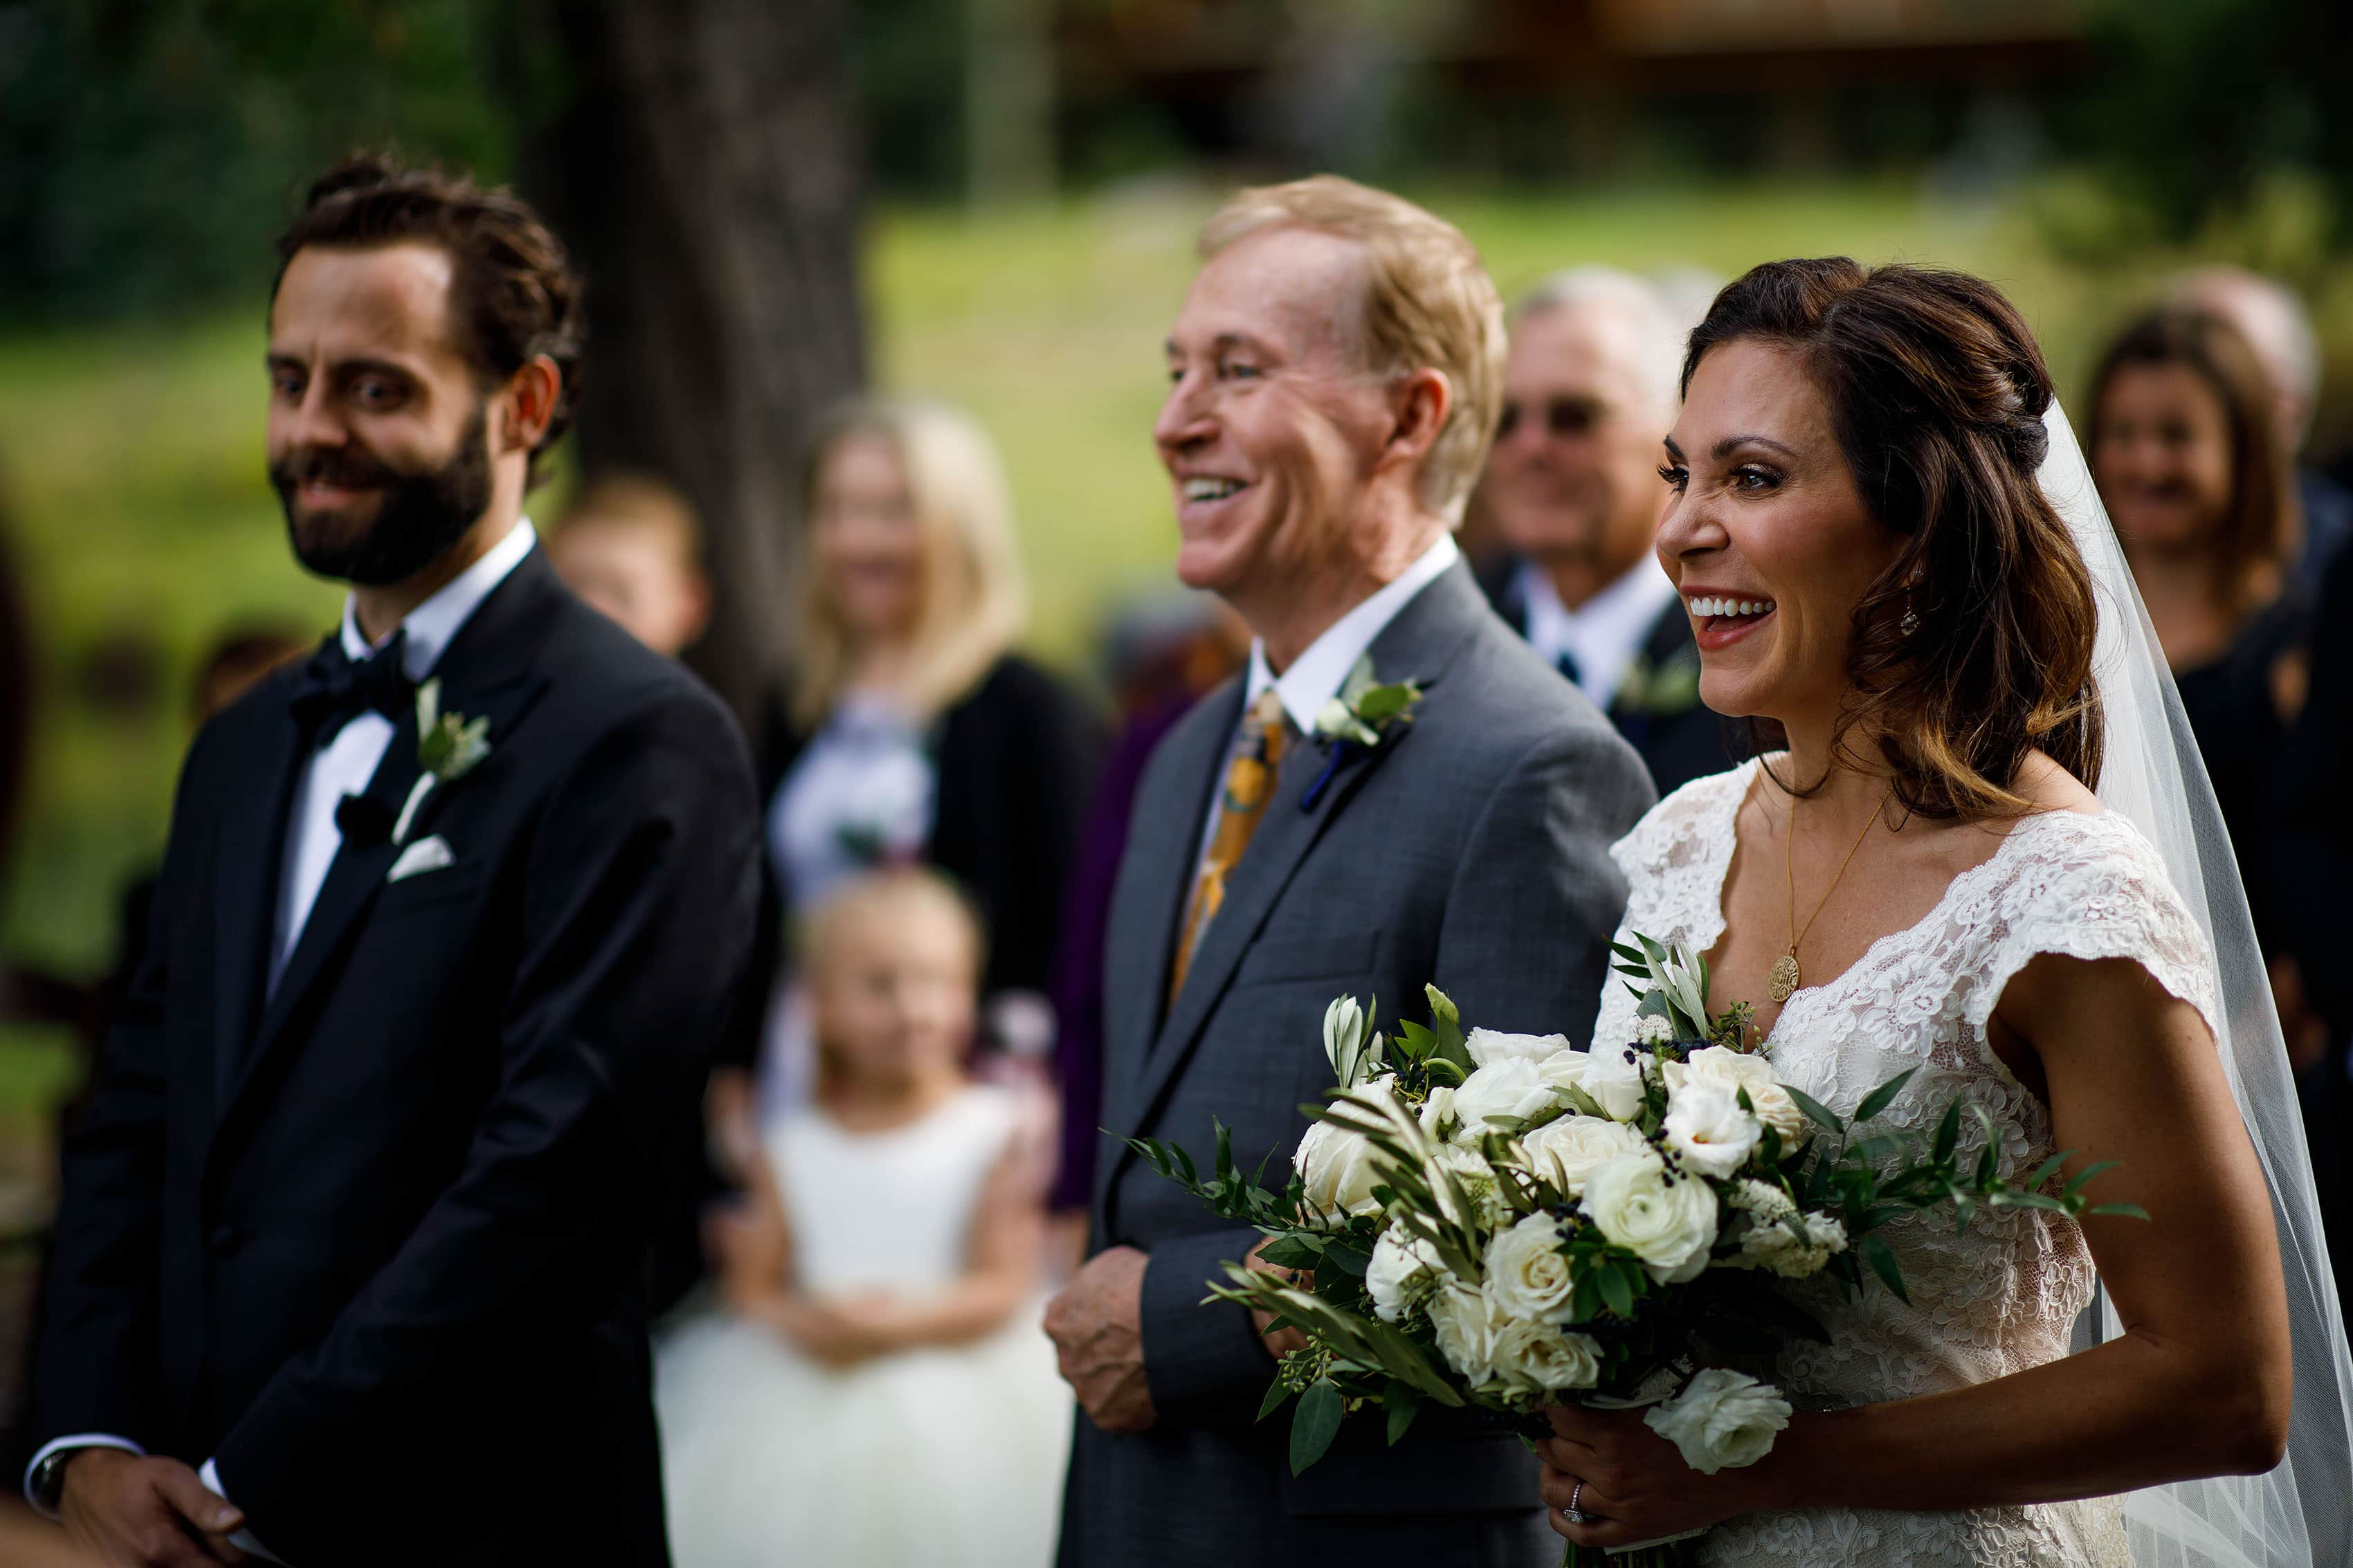 The couple share a laugh during their wedding in Vail